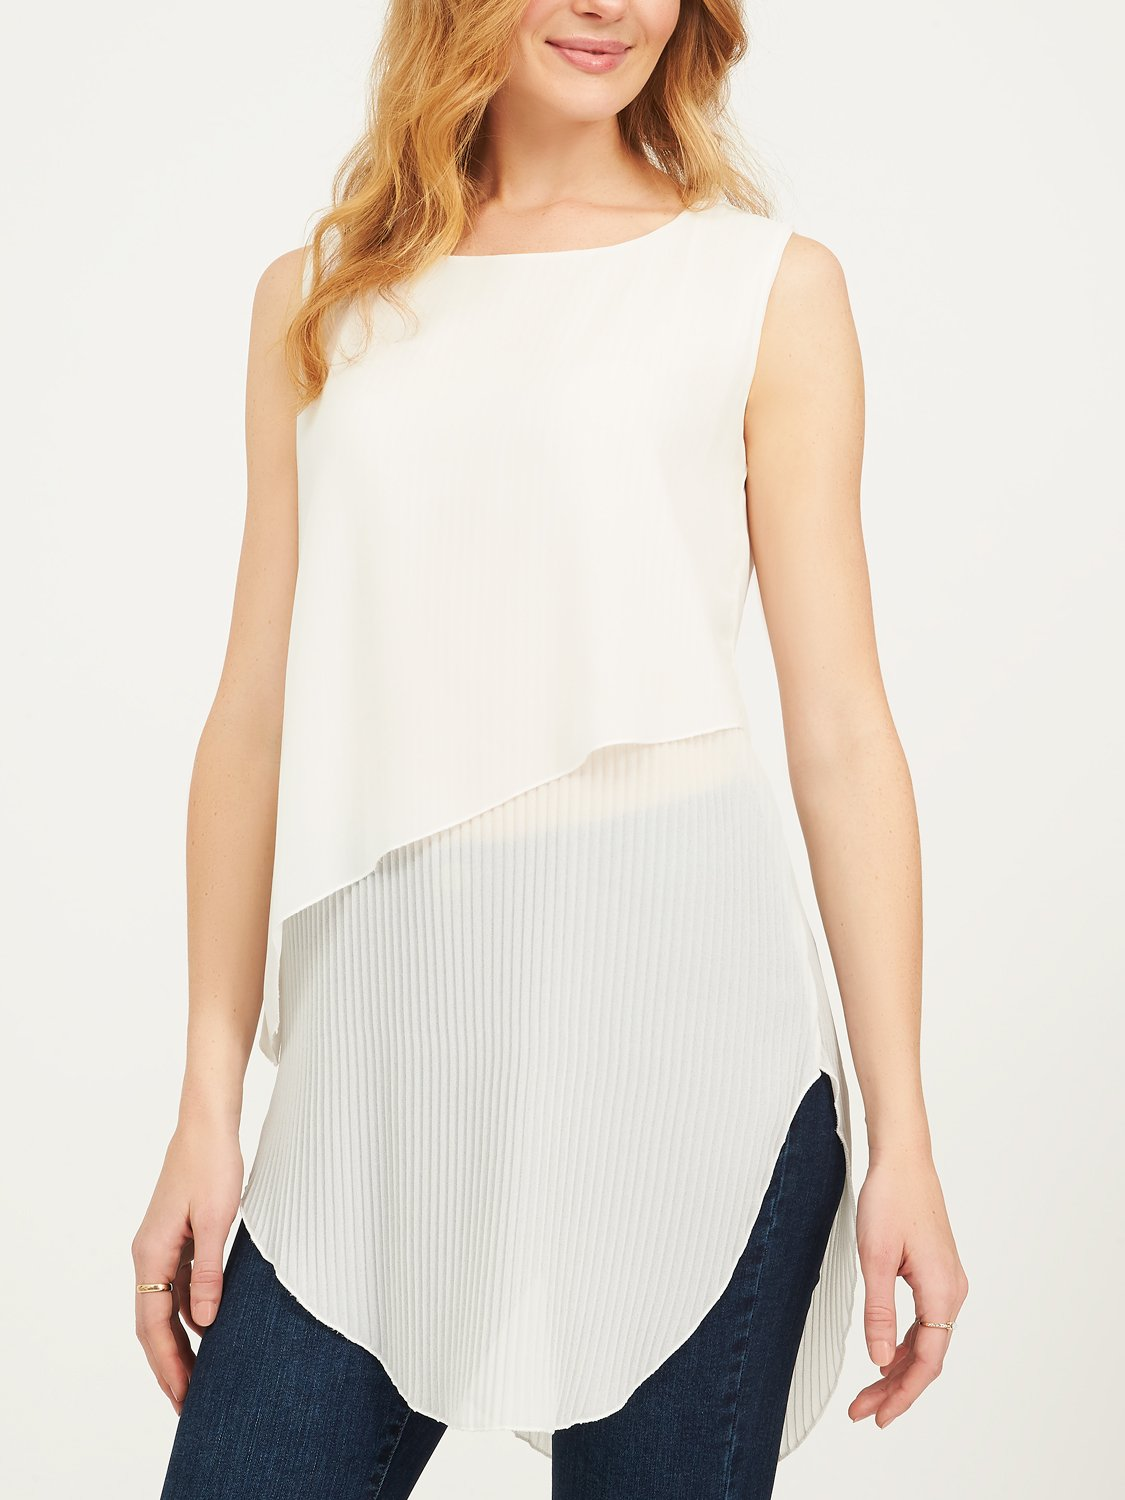 Sleeveless Asymmetrical Chiffon Tunic